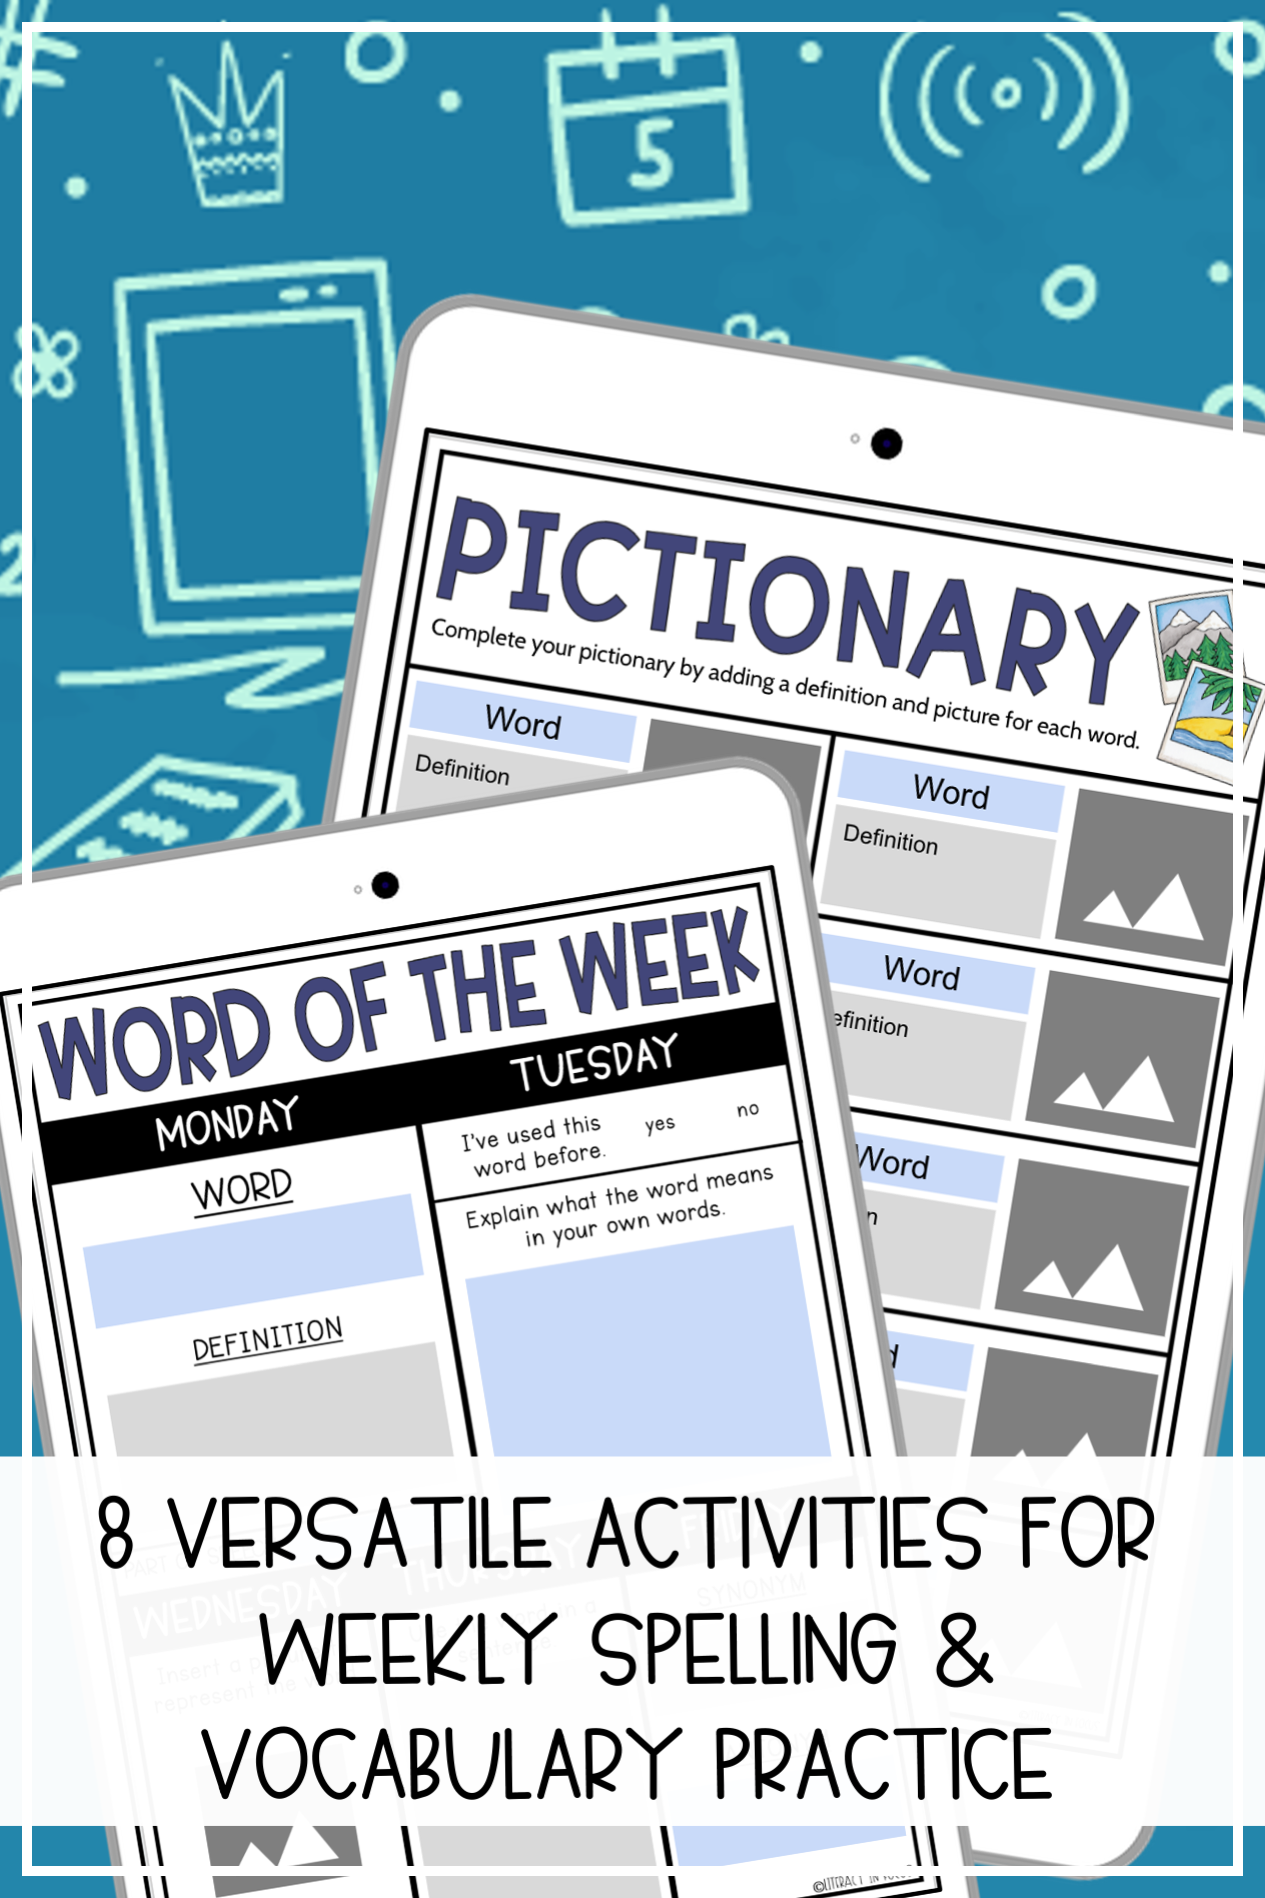 Weekly Spelling Activity Ideas